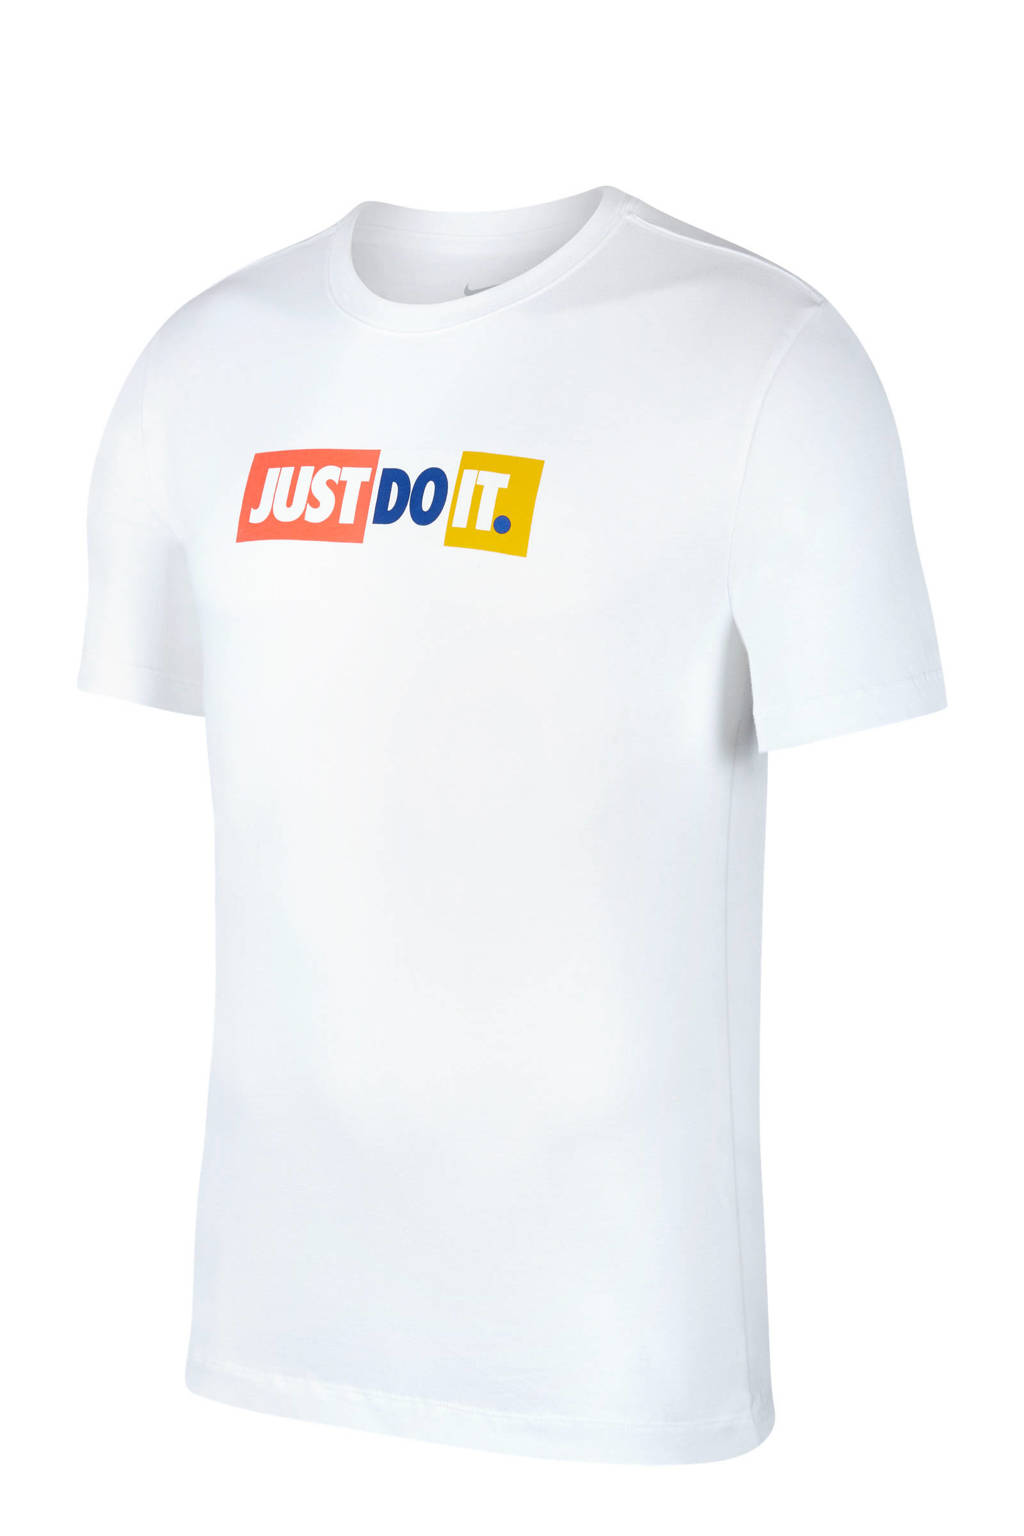 Nike   T-shirt wit, Wit